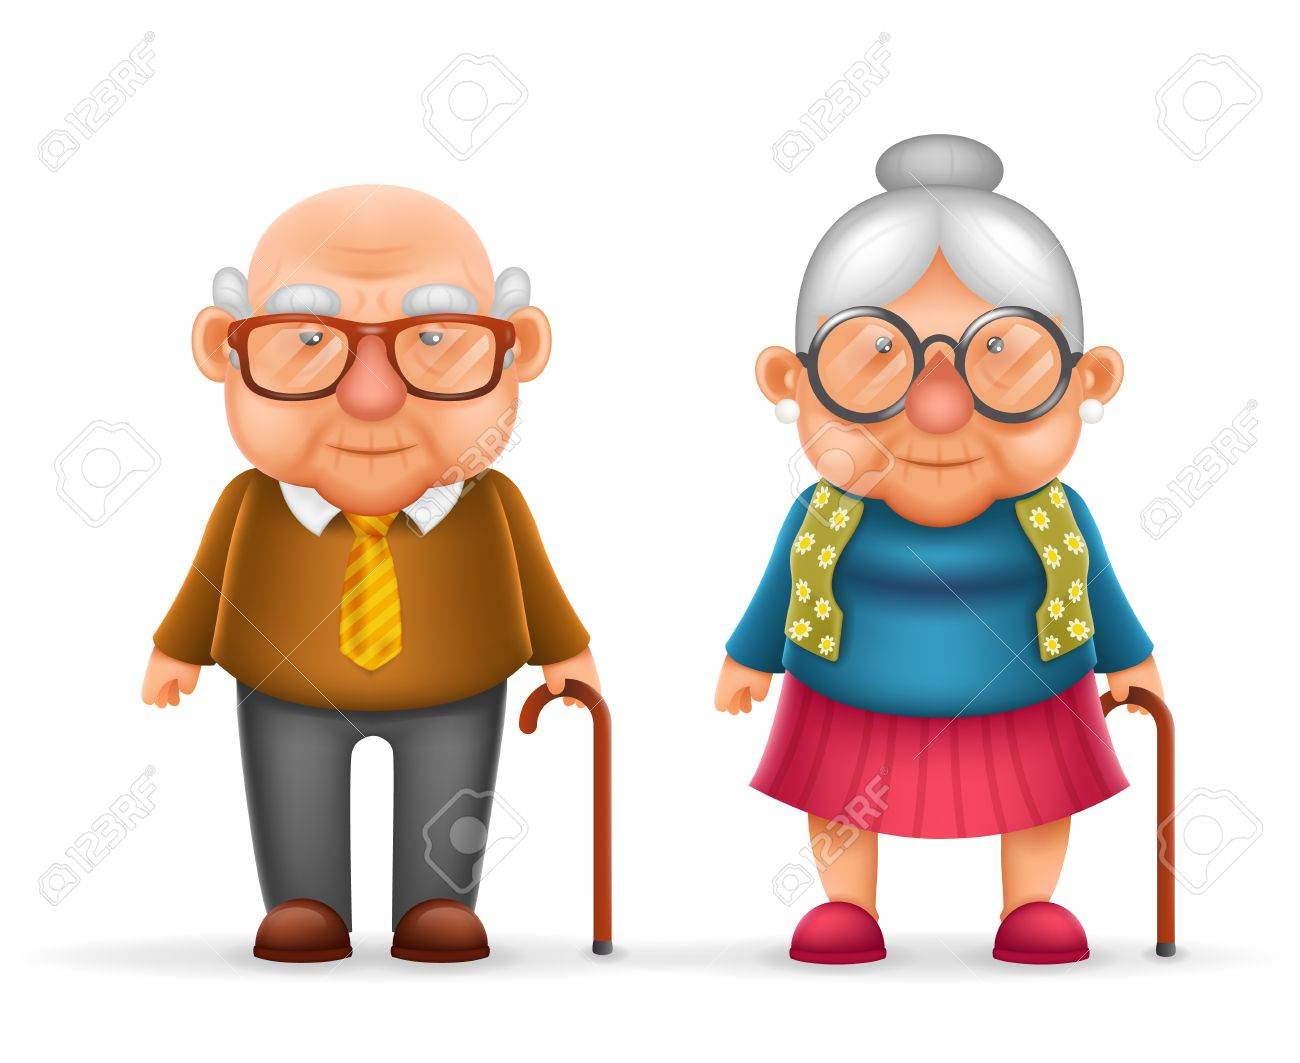 Happy Cute Old Man Lady Grandfather Granny Realistic Cartoon     Happy Cute Old Man Lady Grandfather Granny Realistic Cartoon Family  Character Design Isolated Vector Illustration Stock